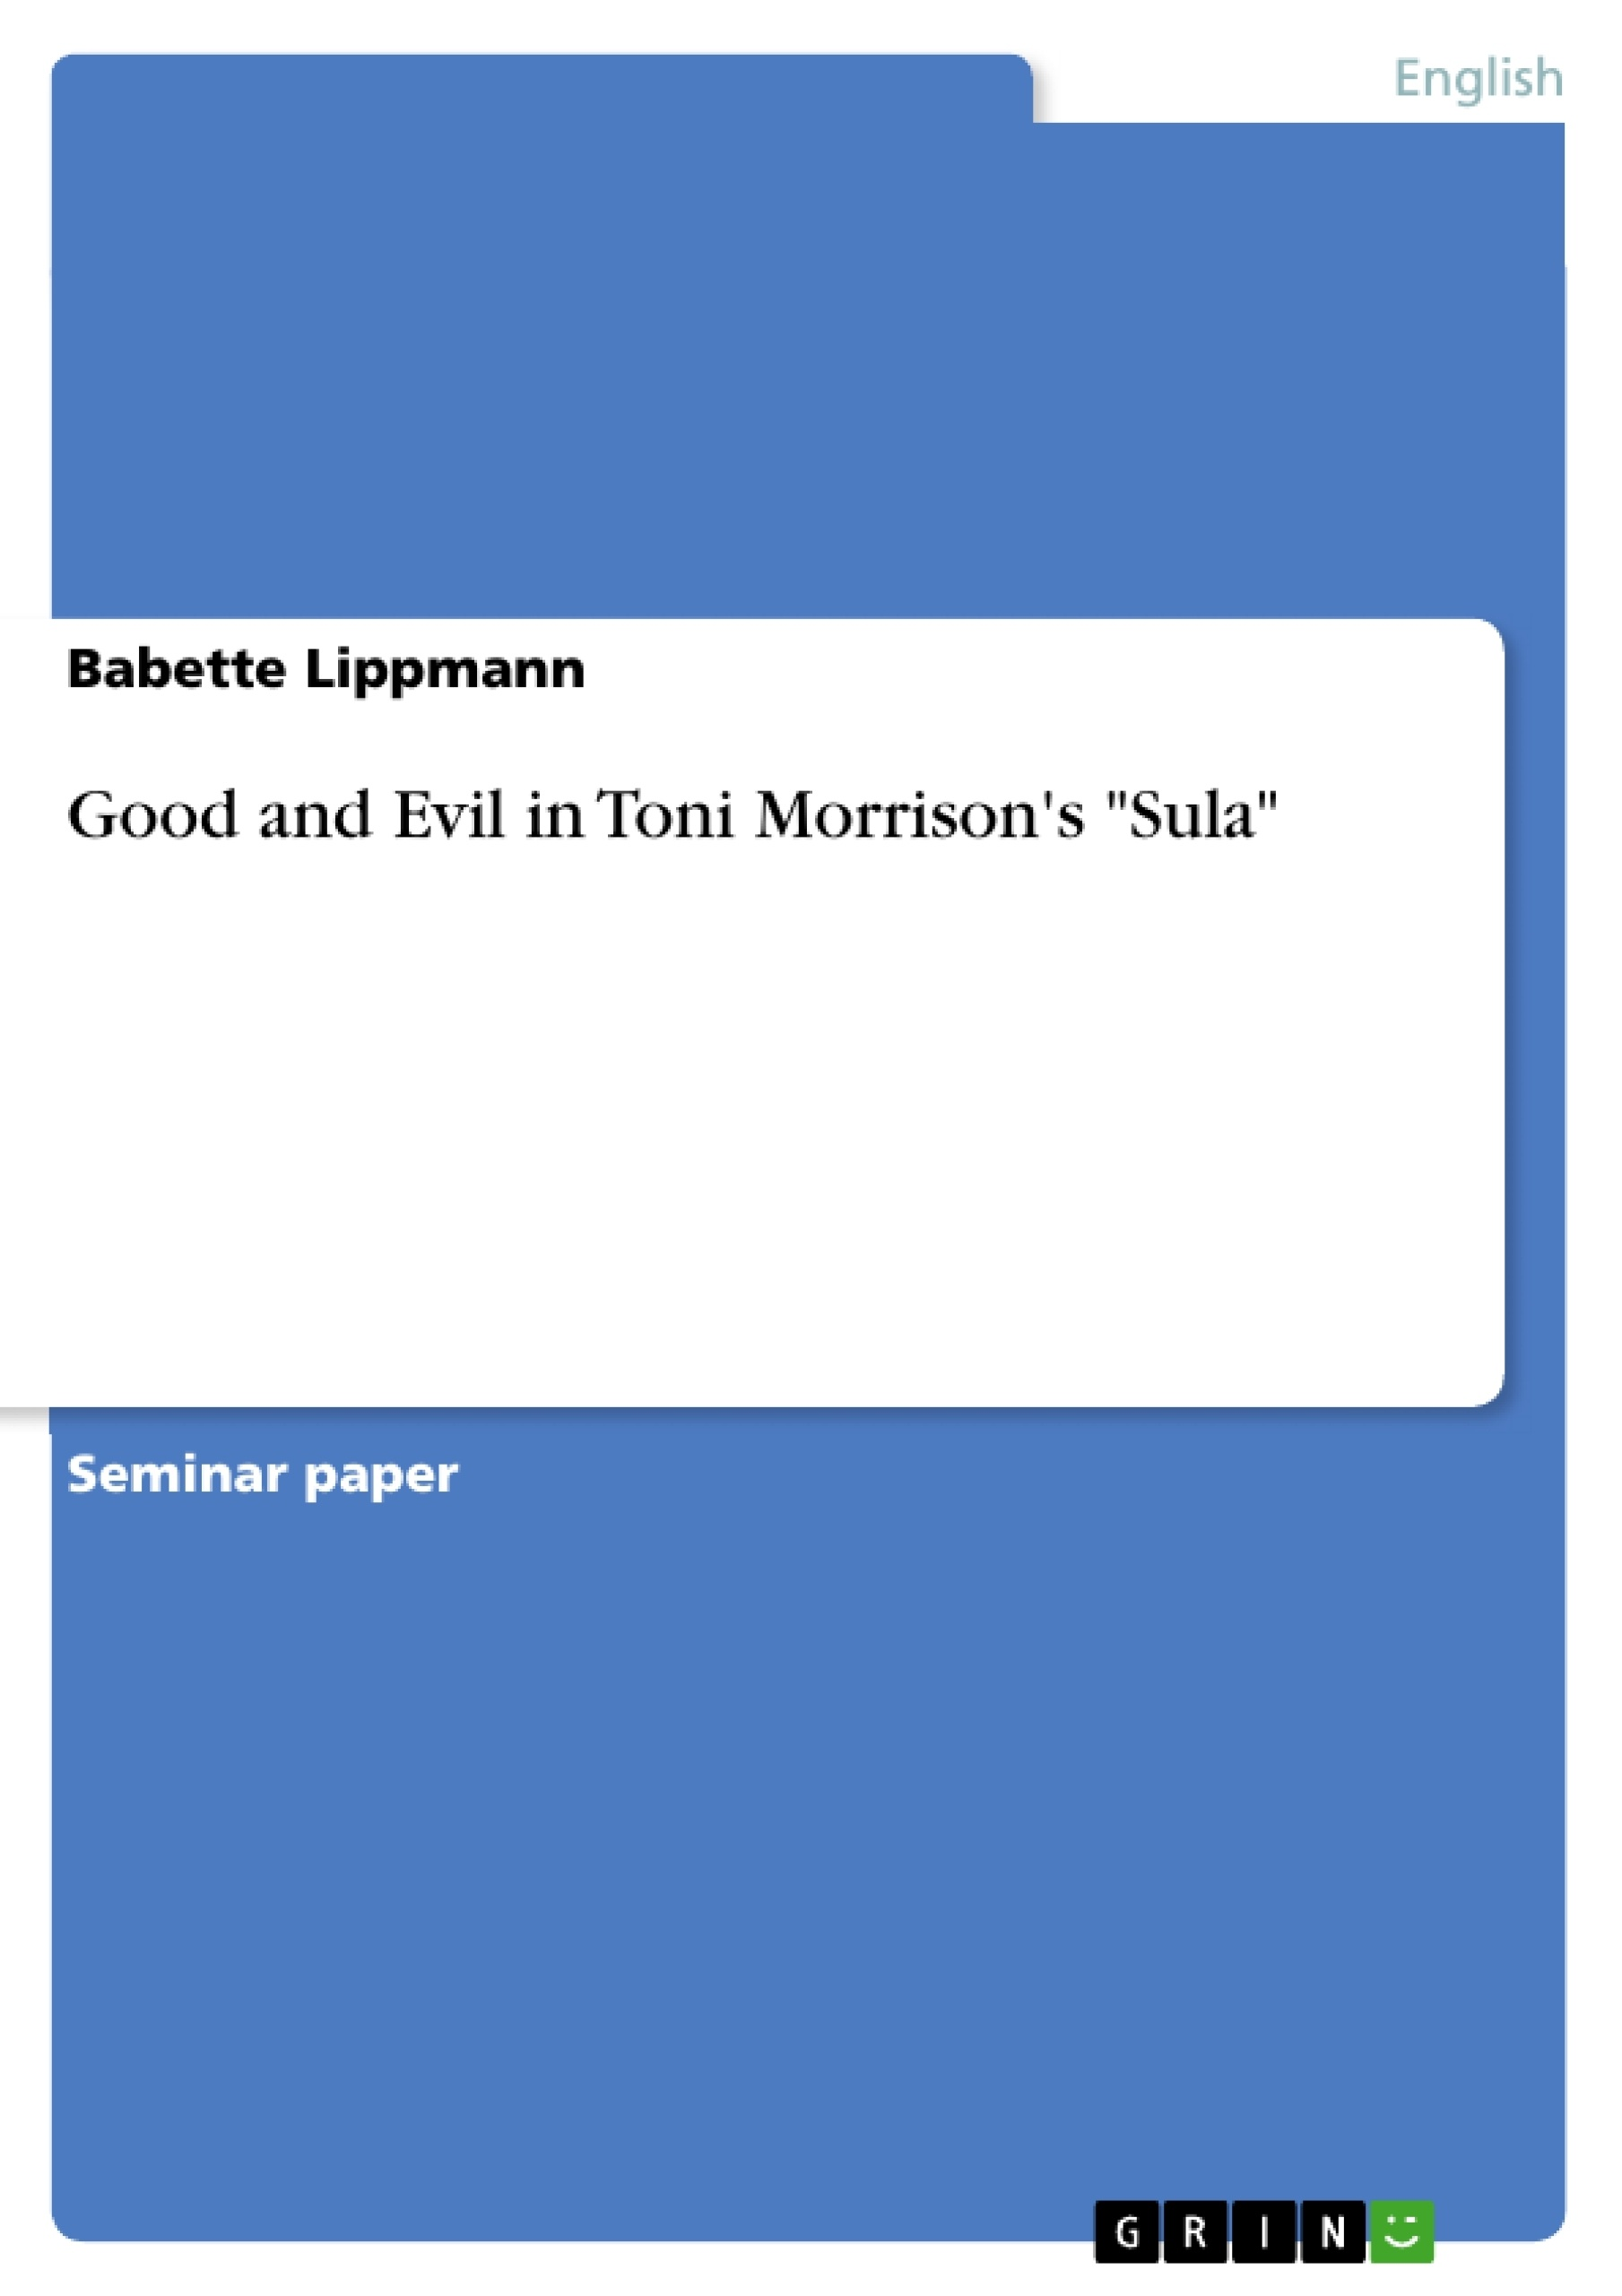 Auto plus magazine essay contest